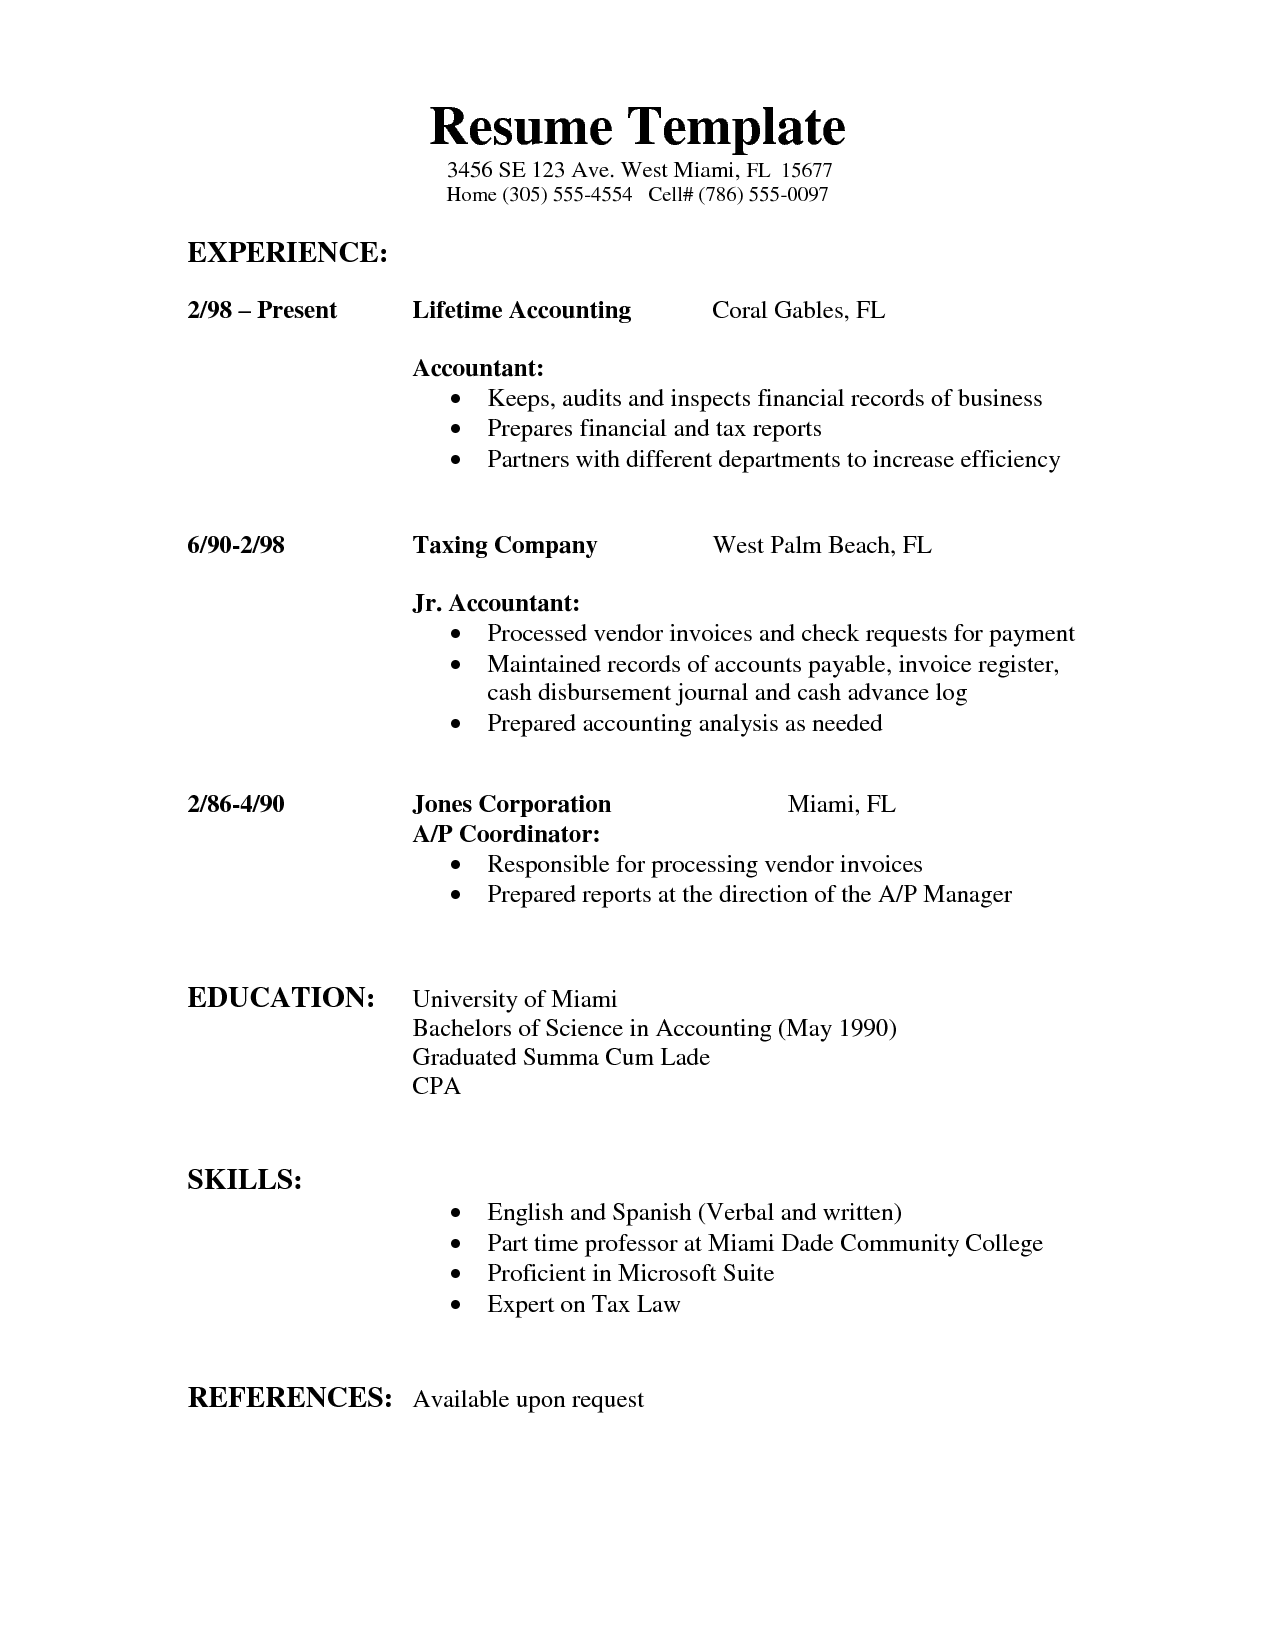 best images about resume templates format and samples on 17 best images about resume templates format and samples resume template layout cv and example of resume